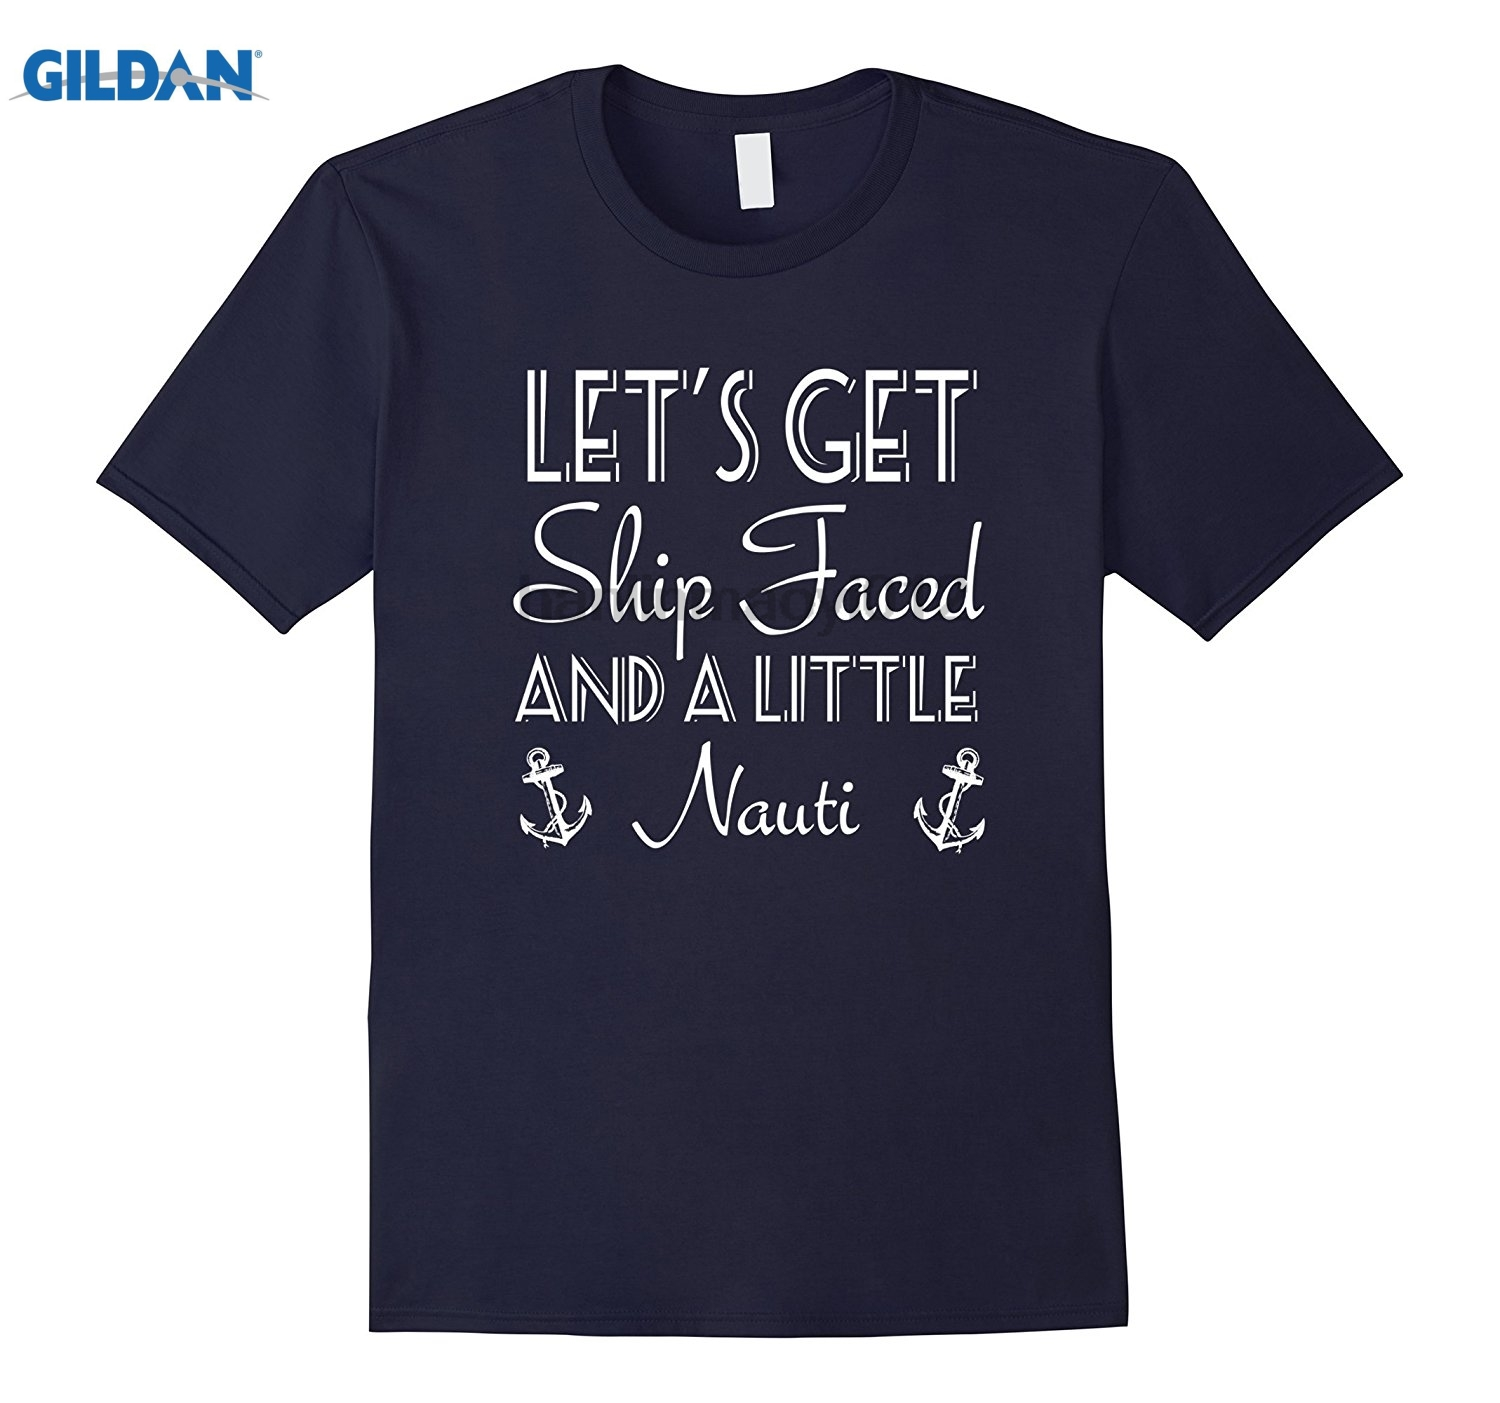 GILDAN Lets Get Ship Faced and a Little Nauti Cruise T-Shirt sunglasses women T-shirt